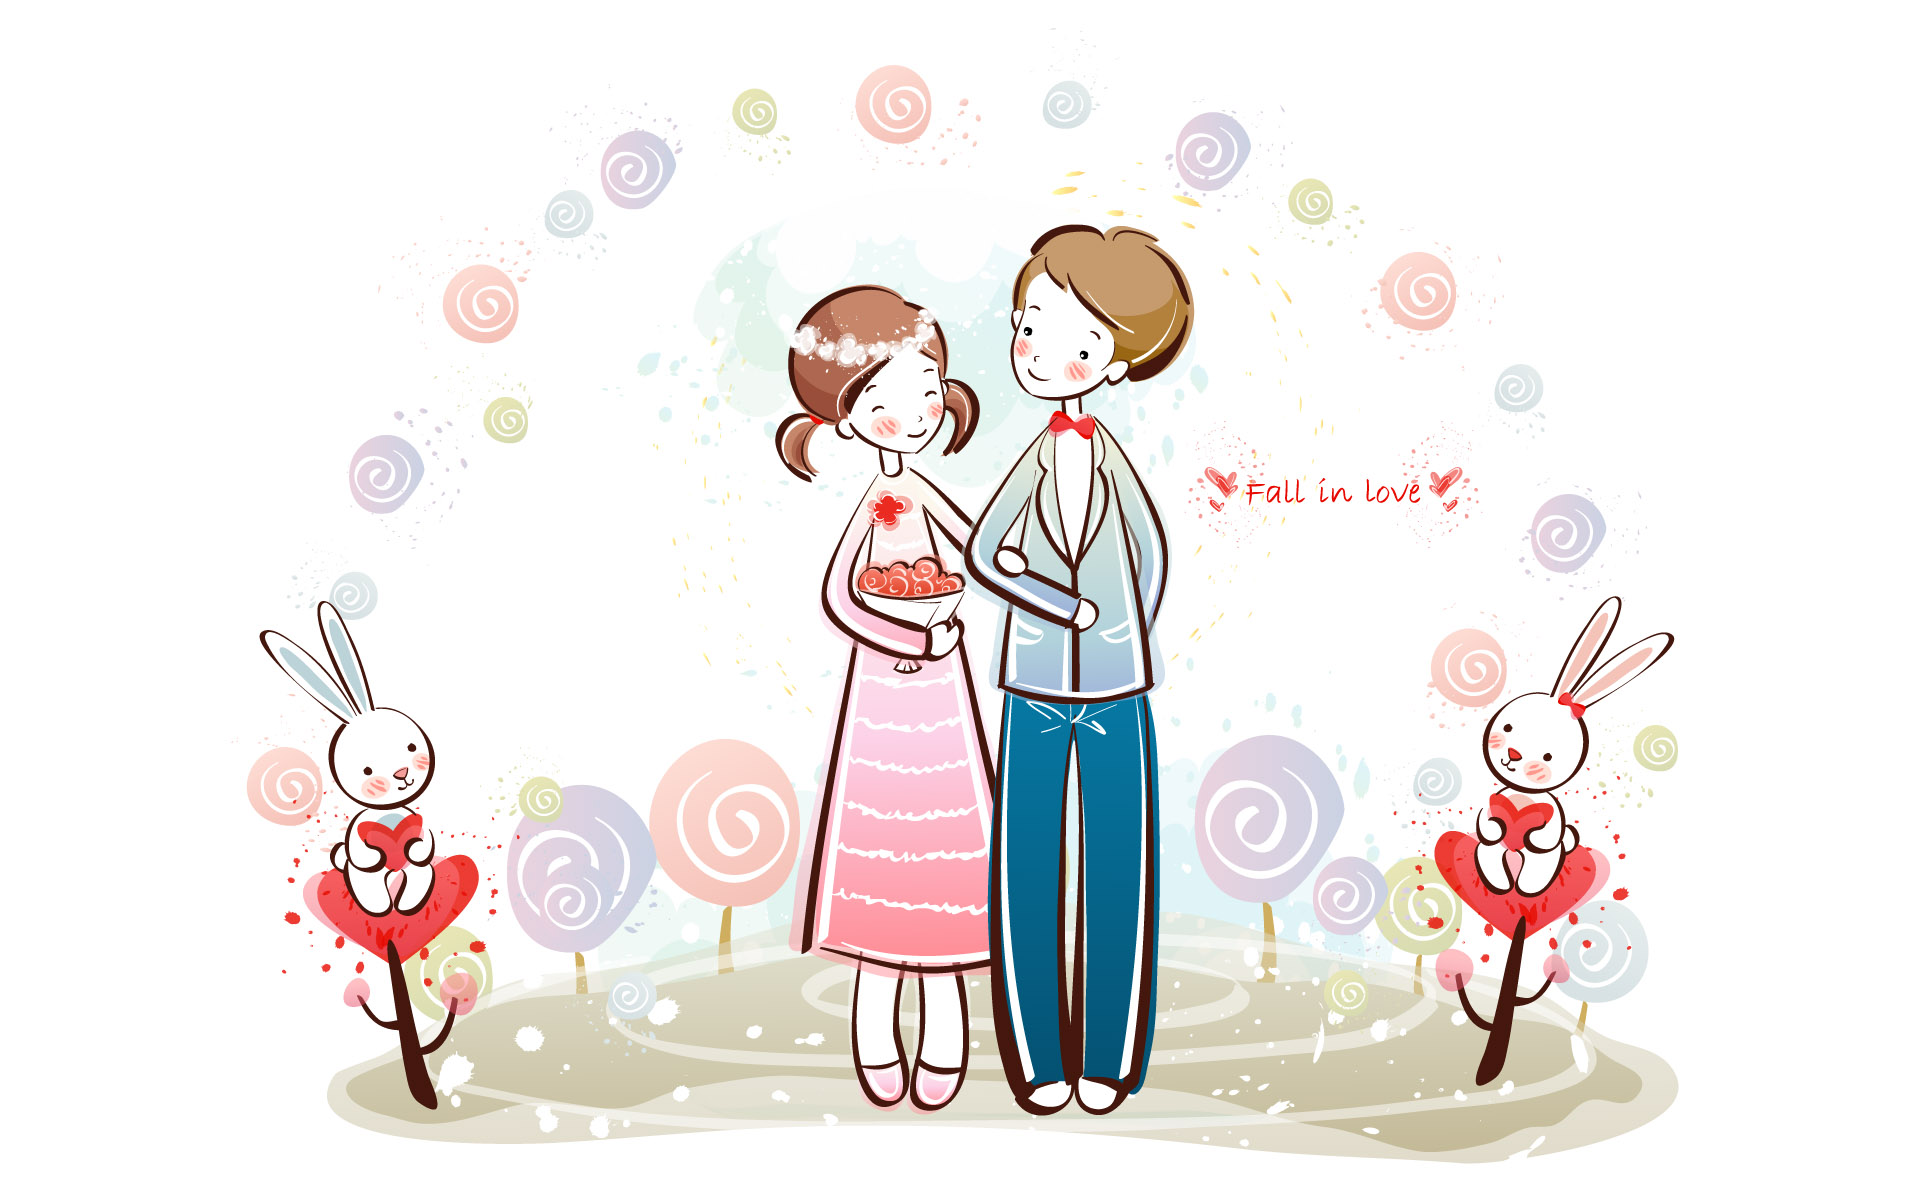 Wallpaper Fall In Love cartoon : couple cartoon wallpaper 238275